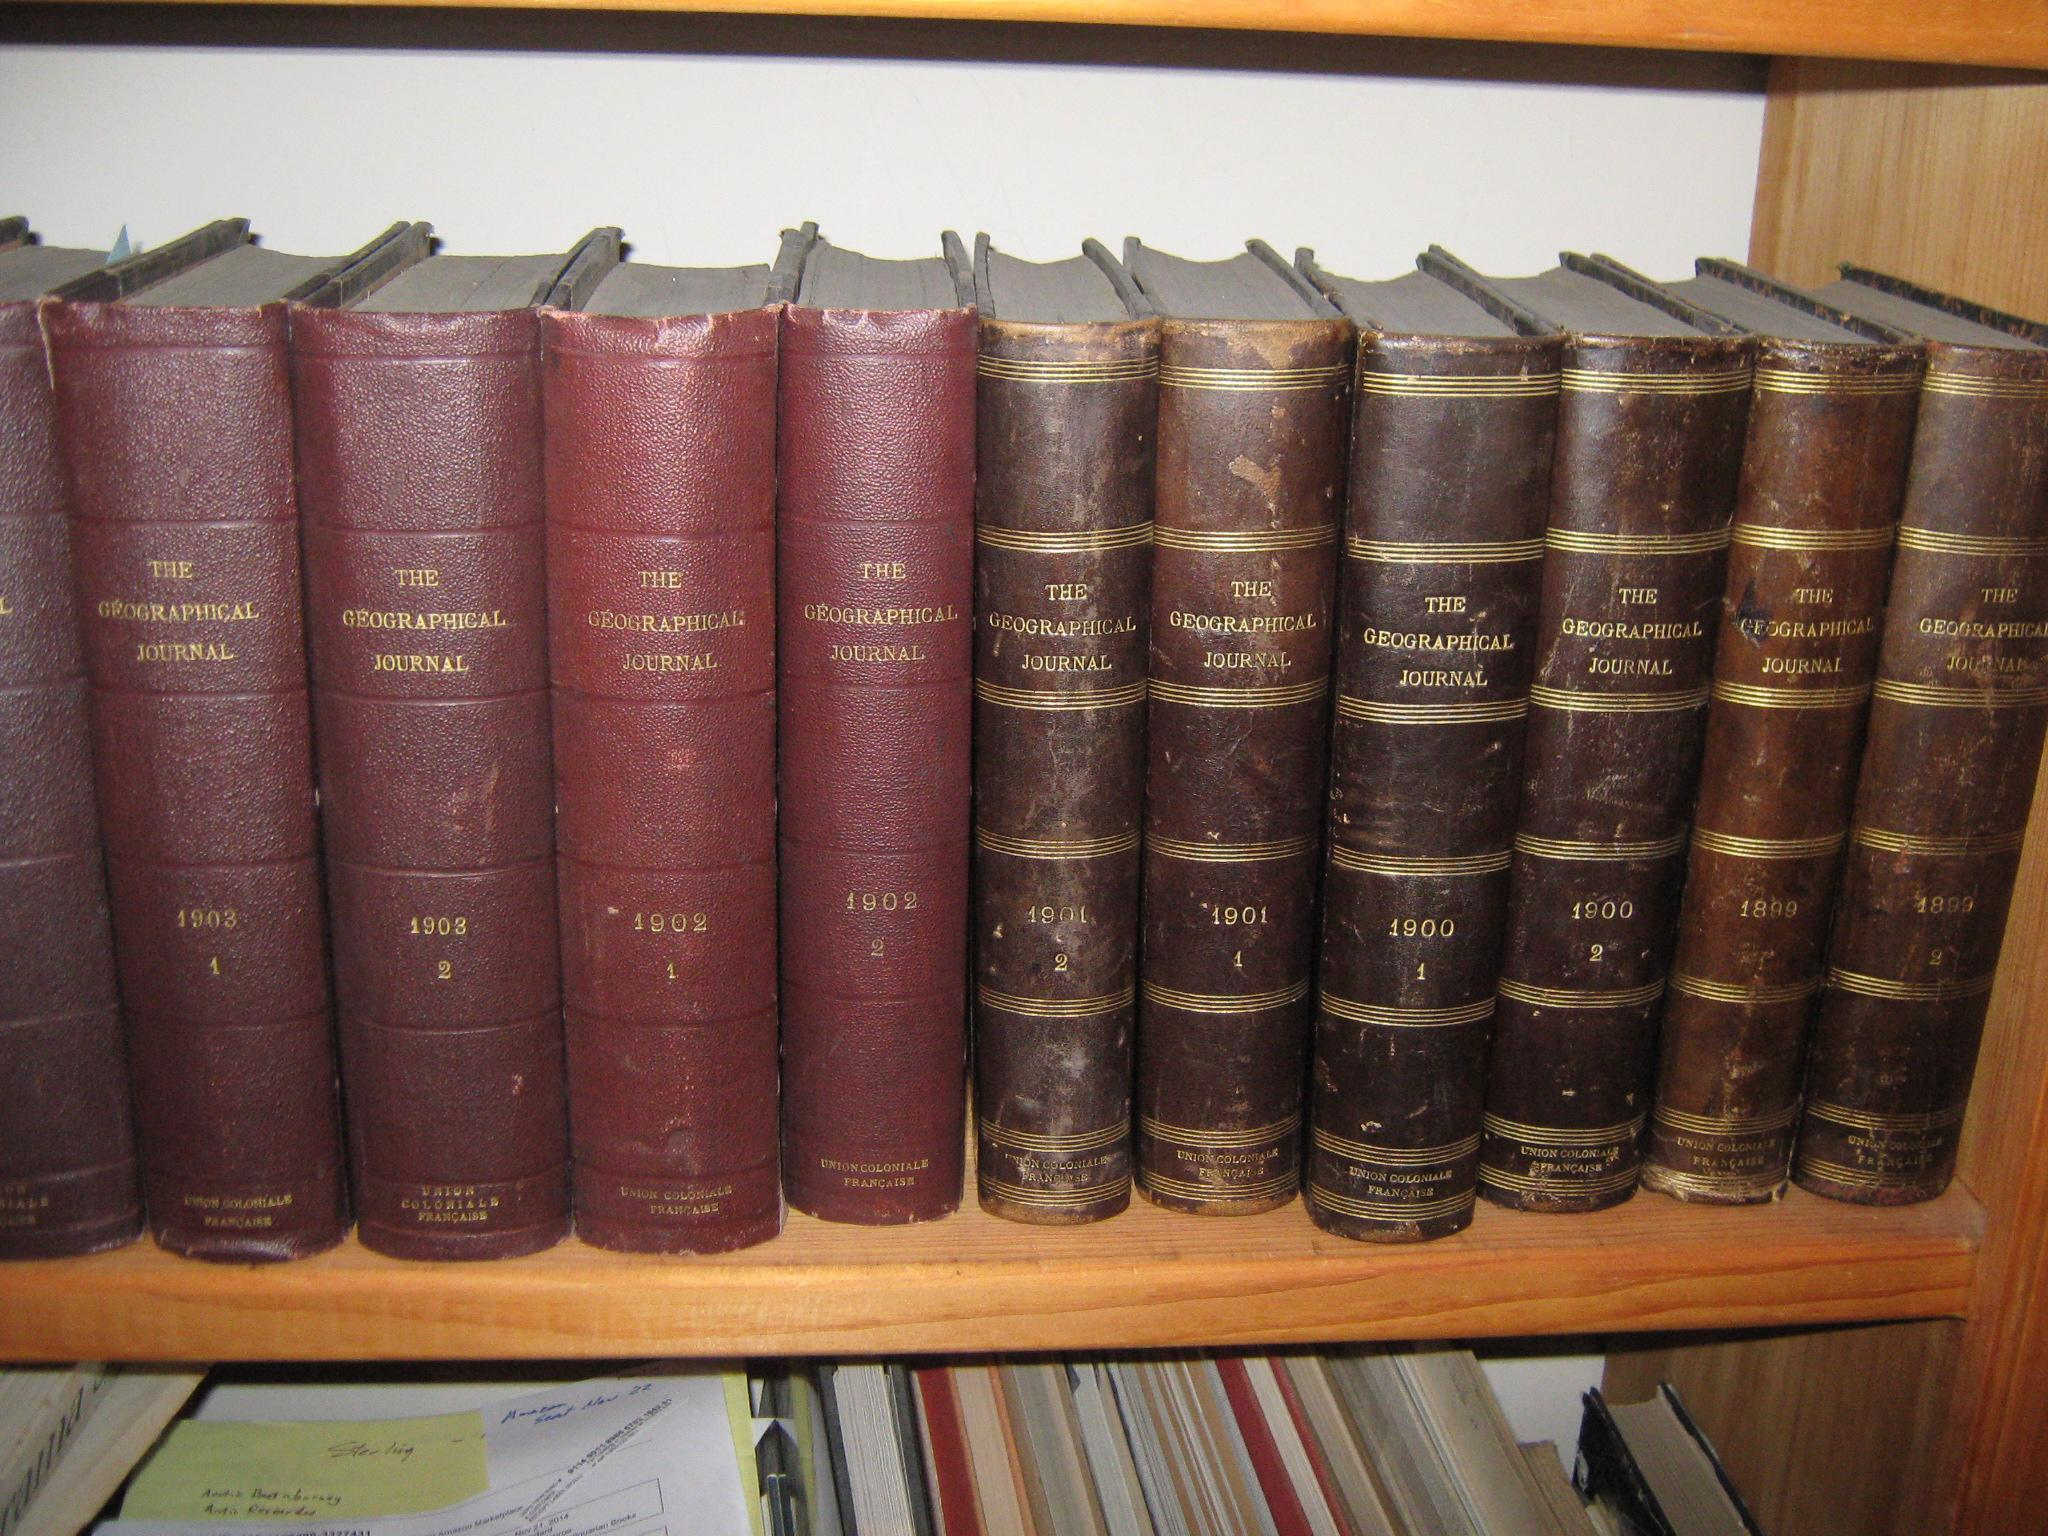 The Geographical Journal, Including the Proceedings of the Royal Geographical Society, 34 Bound Books, 1893-1909